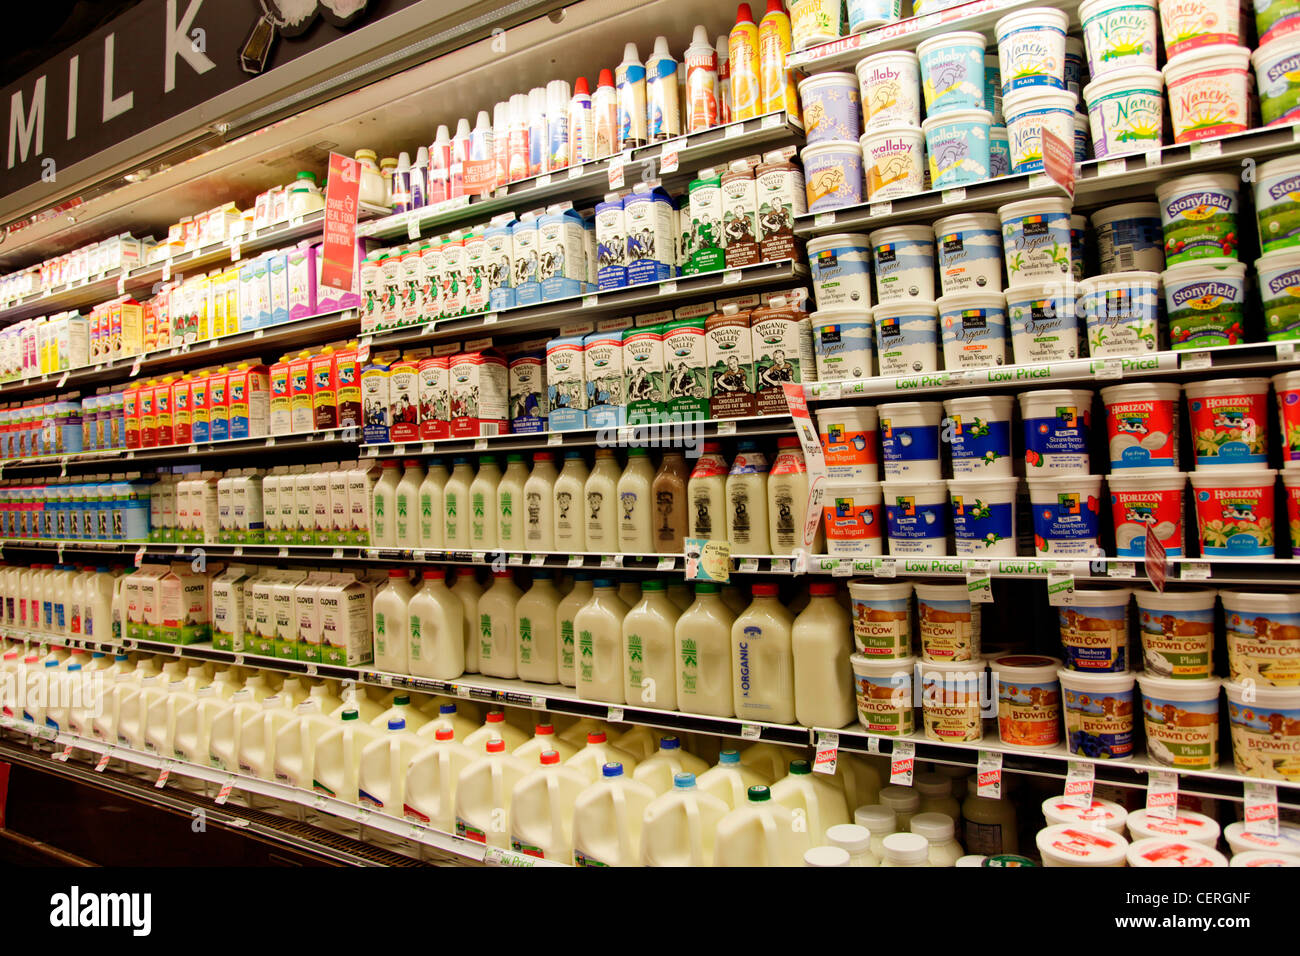 Dairy Products For Sale In Supermarket Stock Photo